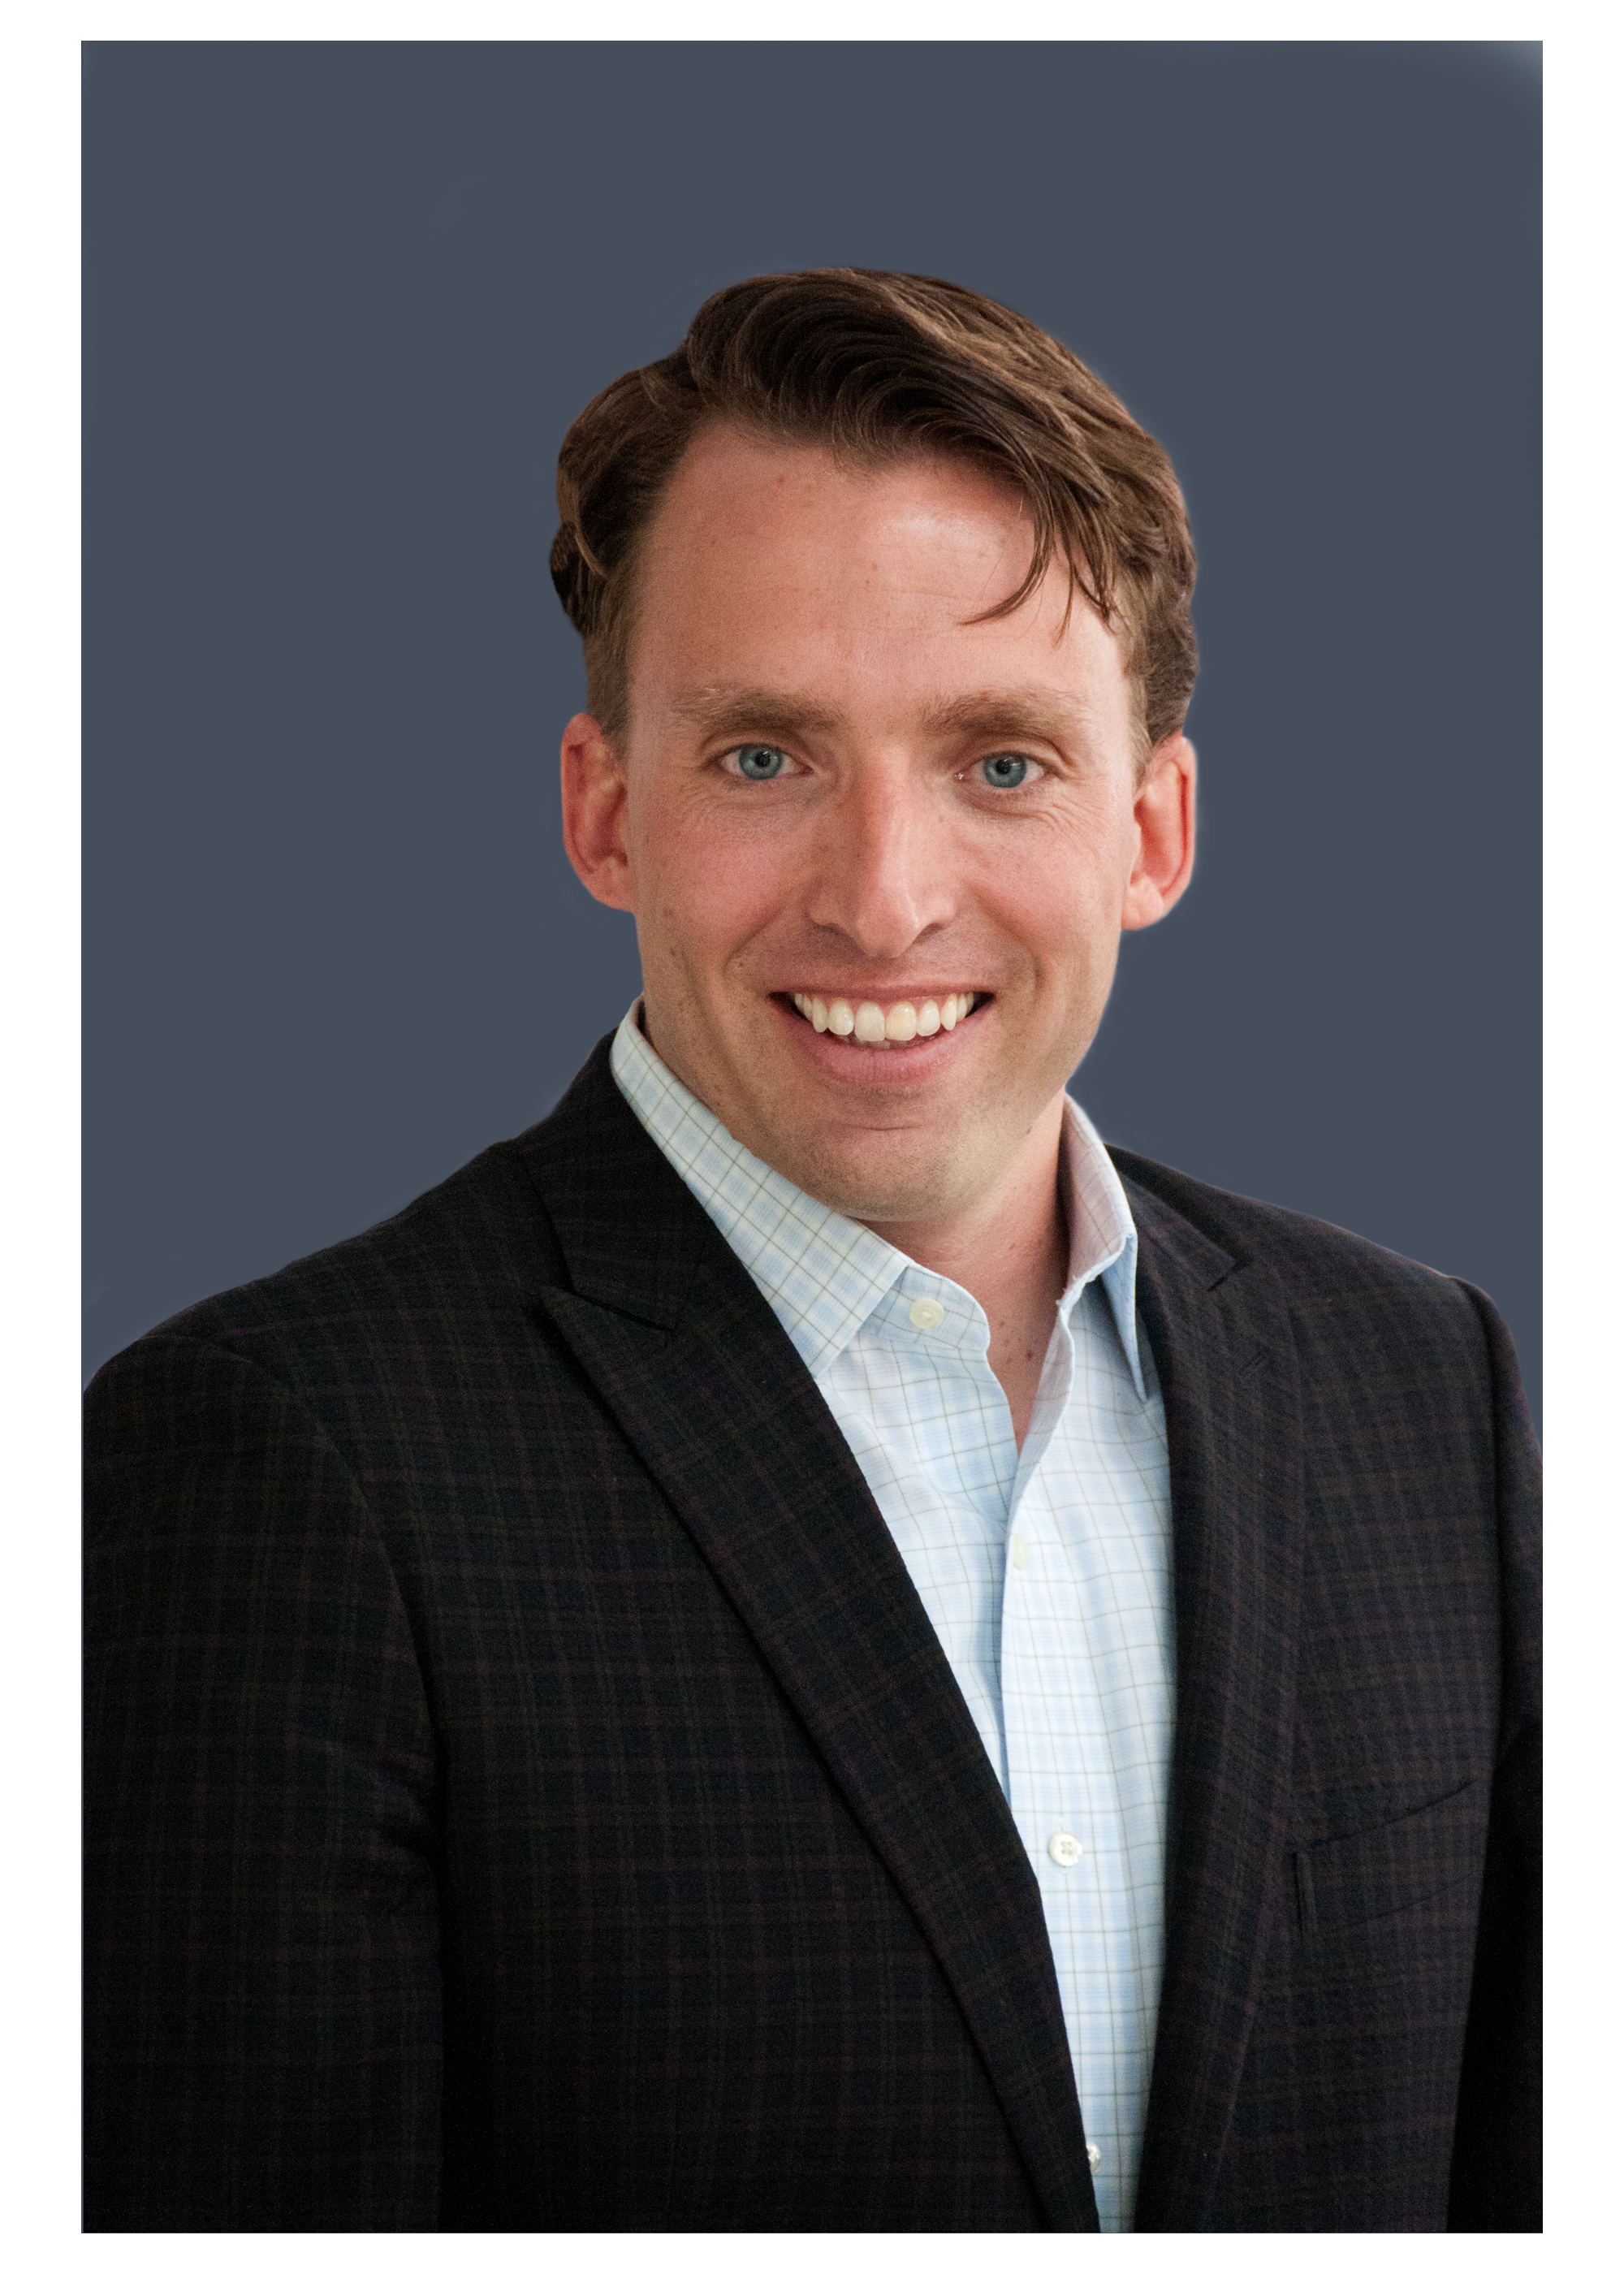 Brad Rencher, EVP and general manager of digital marketing at Adobe